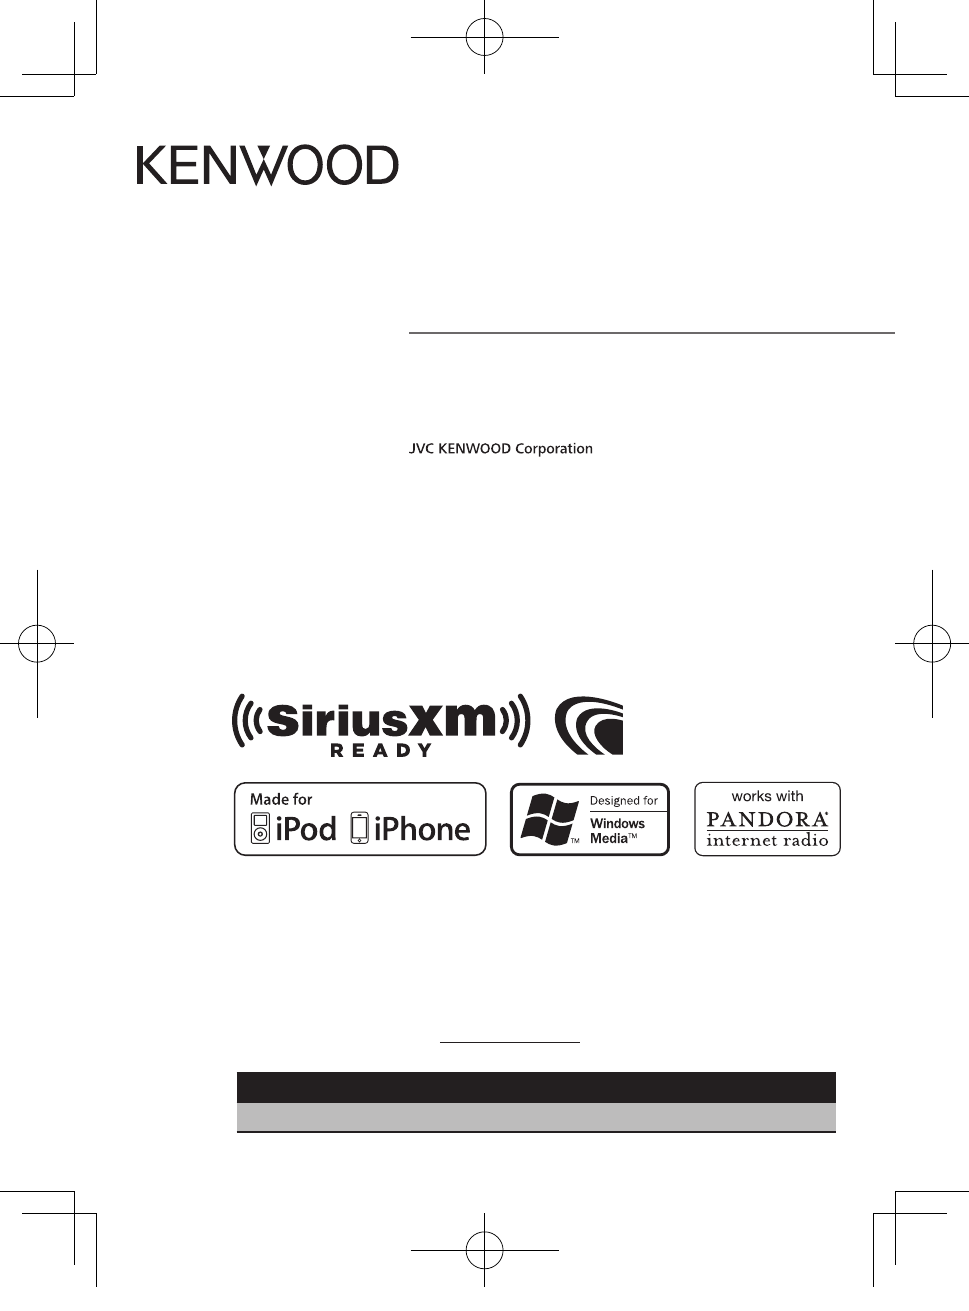 wiring diagram kenwood kdc 400u electrical wiring diagrams u2022 rh 45 77 189 151 kenwood kdc-400u wiring diagram Kenwood KDC MP345U Wiring-Diagram